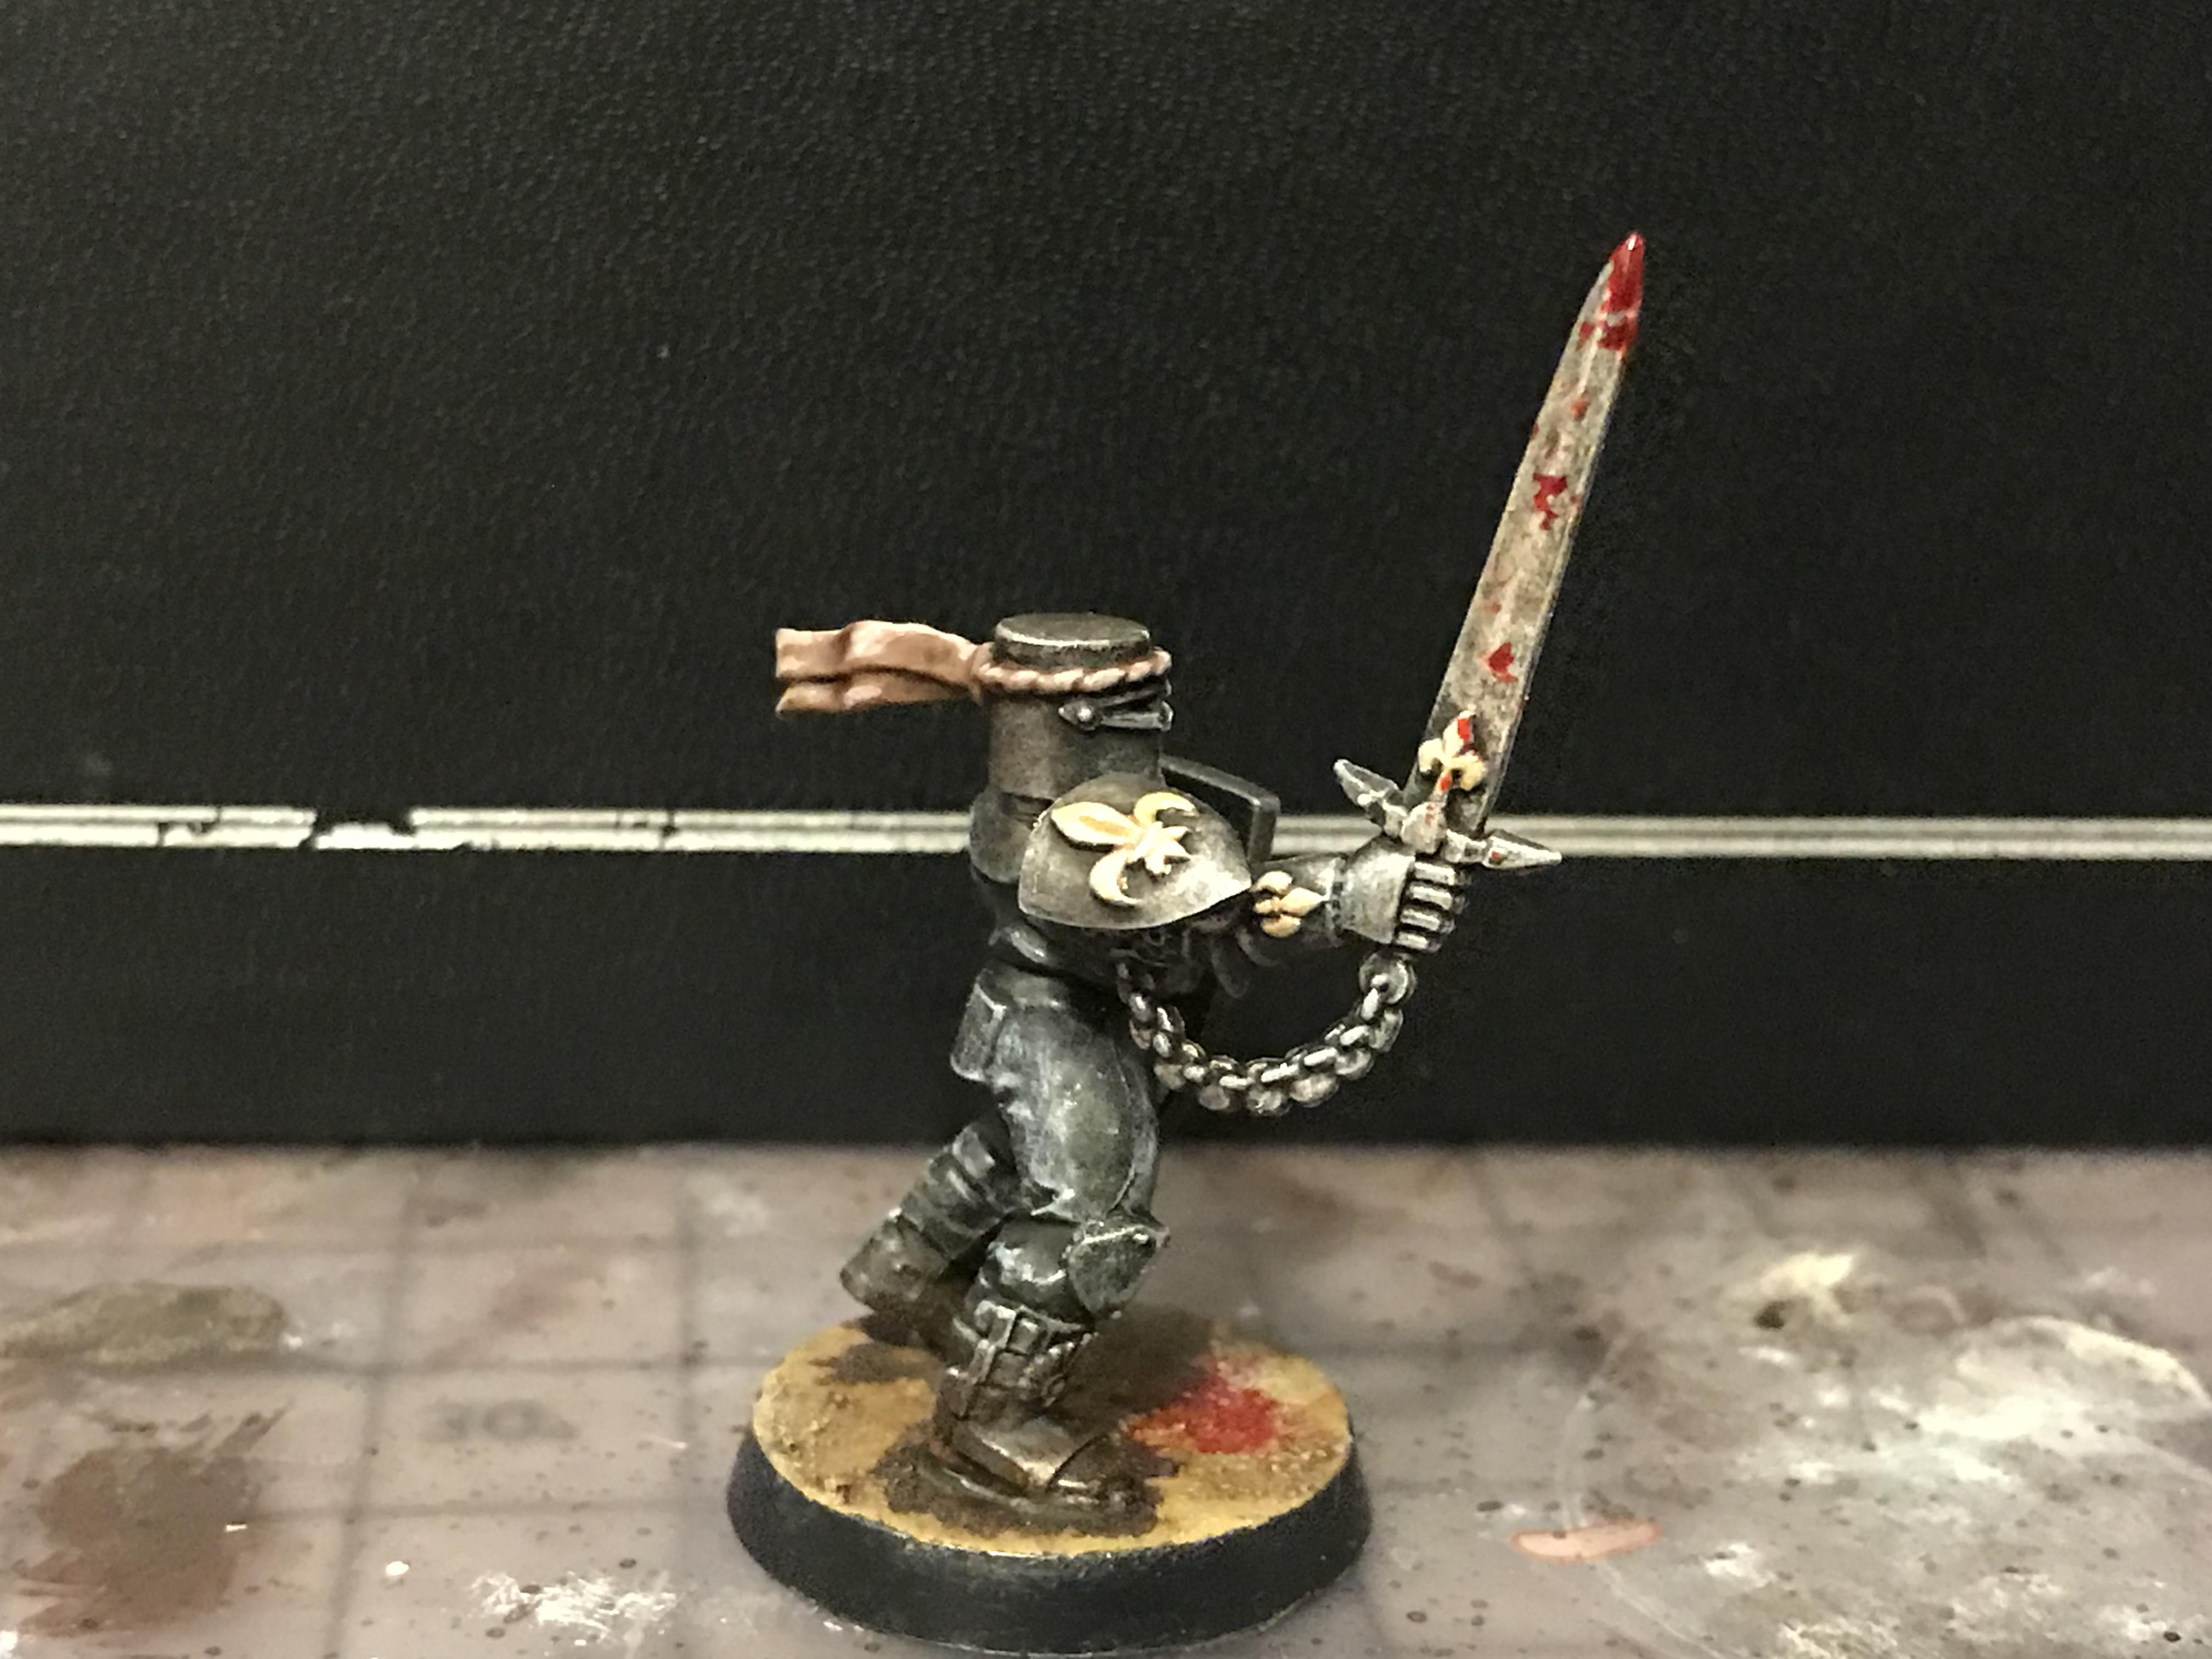 Adventurer, Battle, Character, Game, Gamers, Mini, Miniatures, Models, Player, Roleplay, Warhammer Fantasy